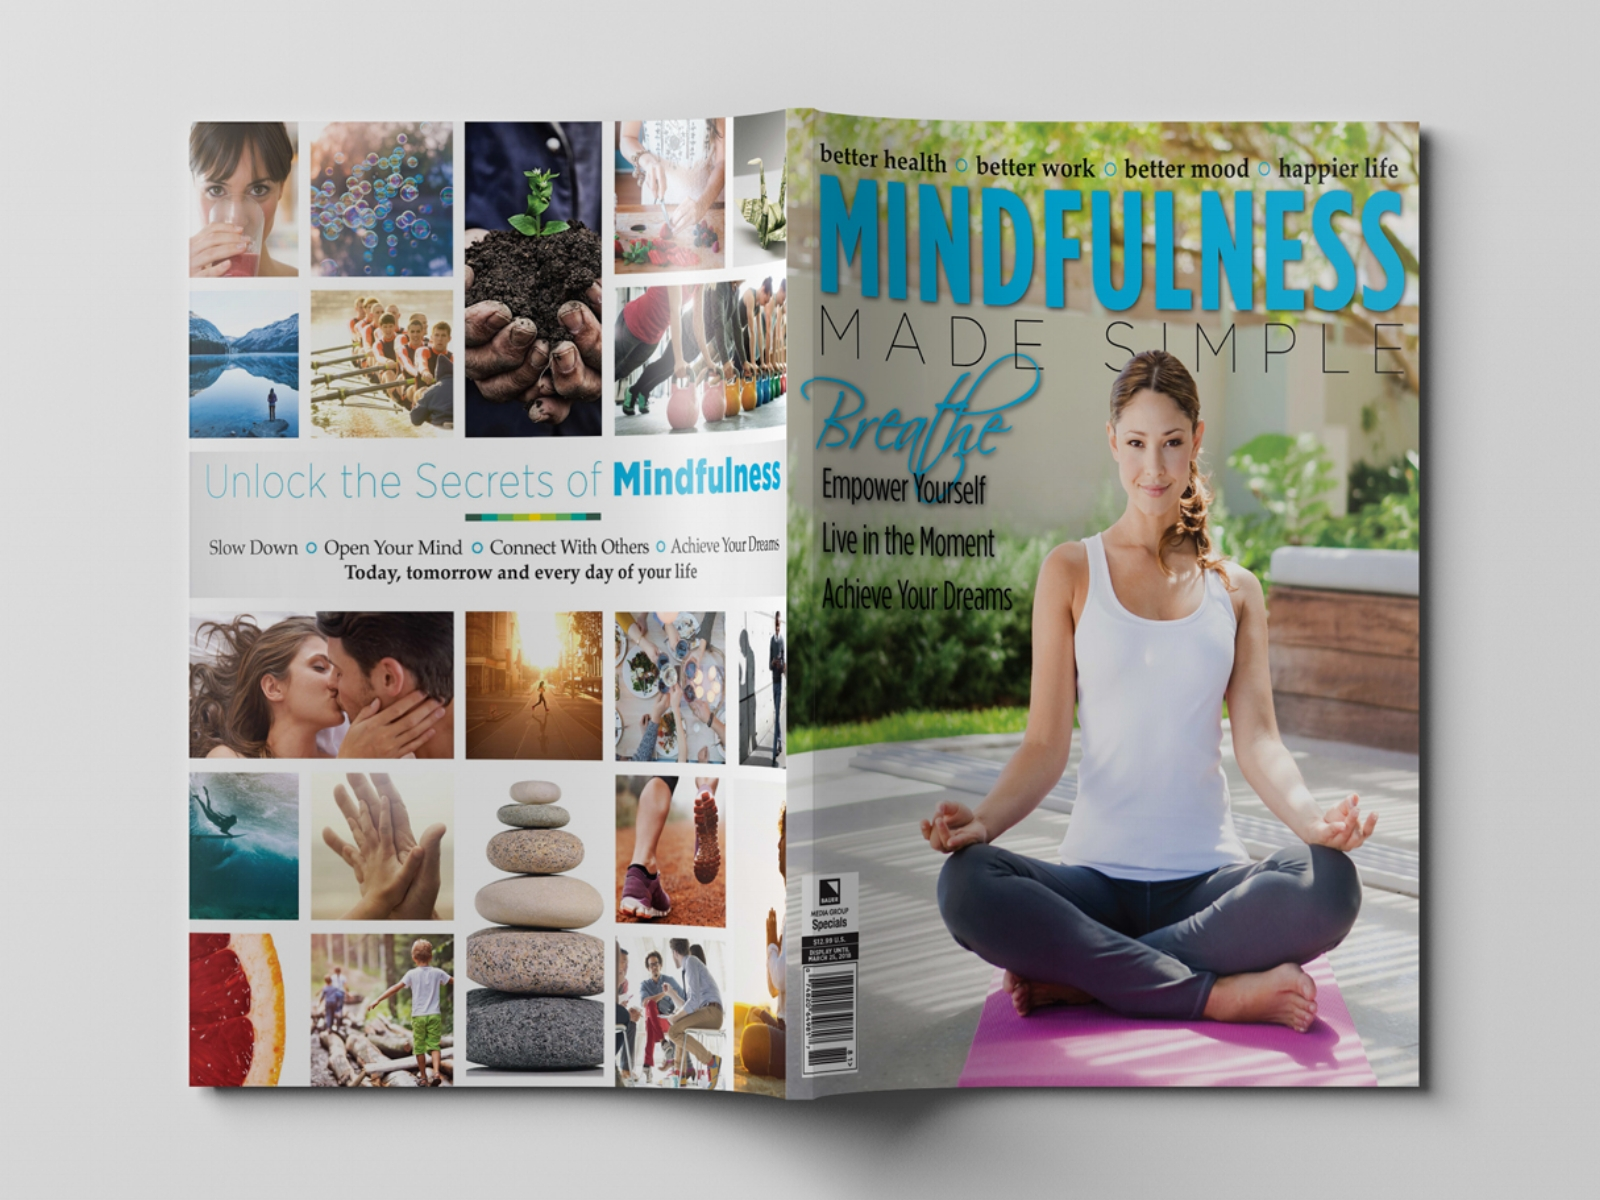 MINDF-Covers-(1).jpg